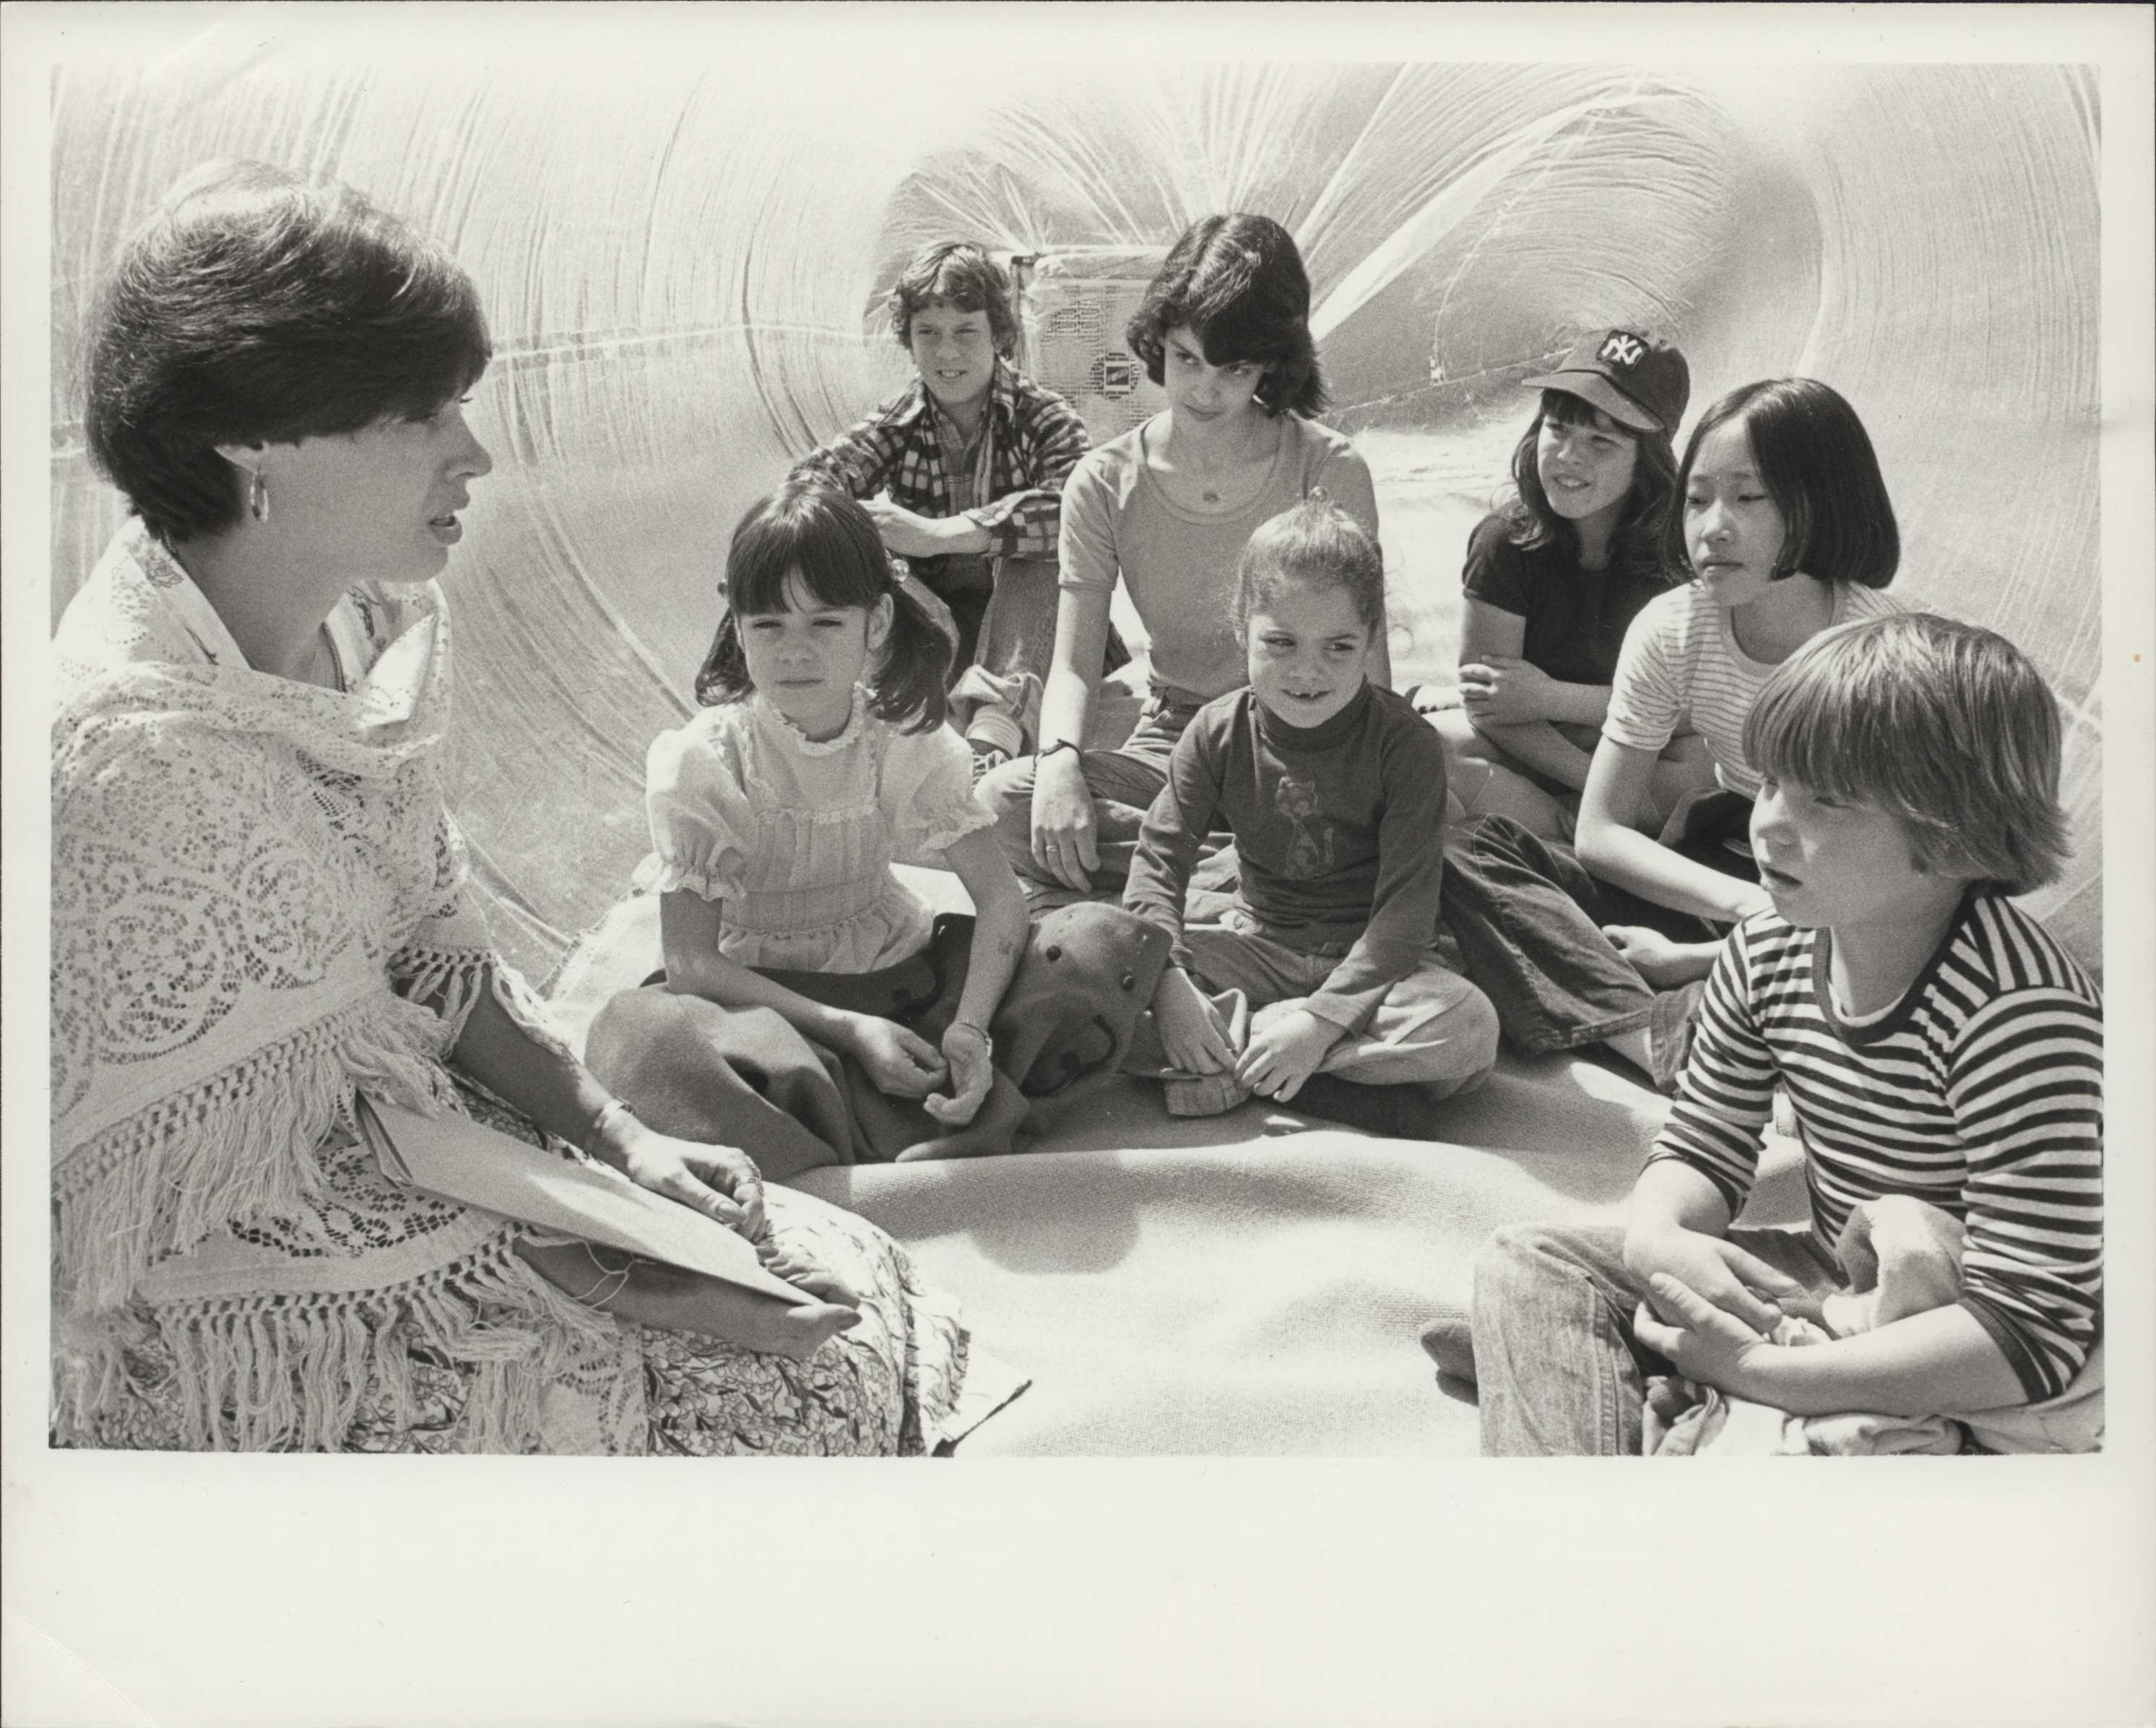 Susan Messer, NCLA National Library Chairman storytelling in the 'magic bubble' 4-17-1977.jpg